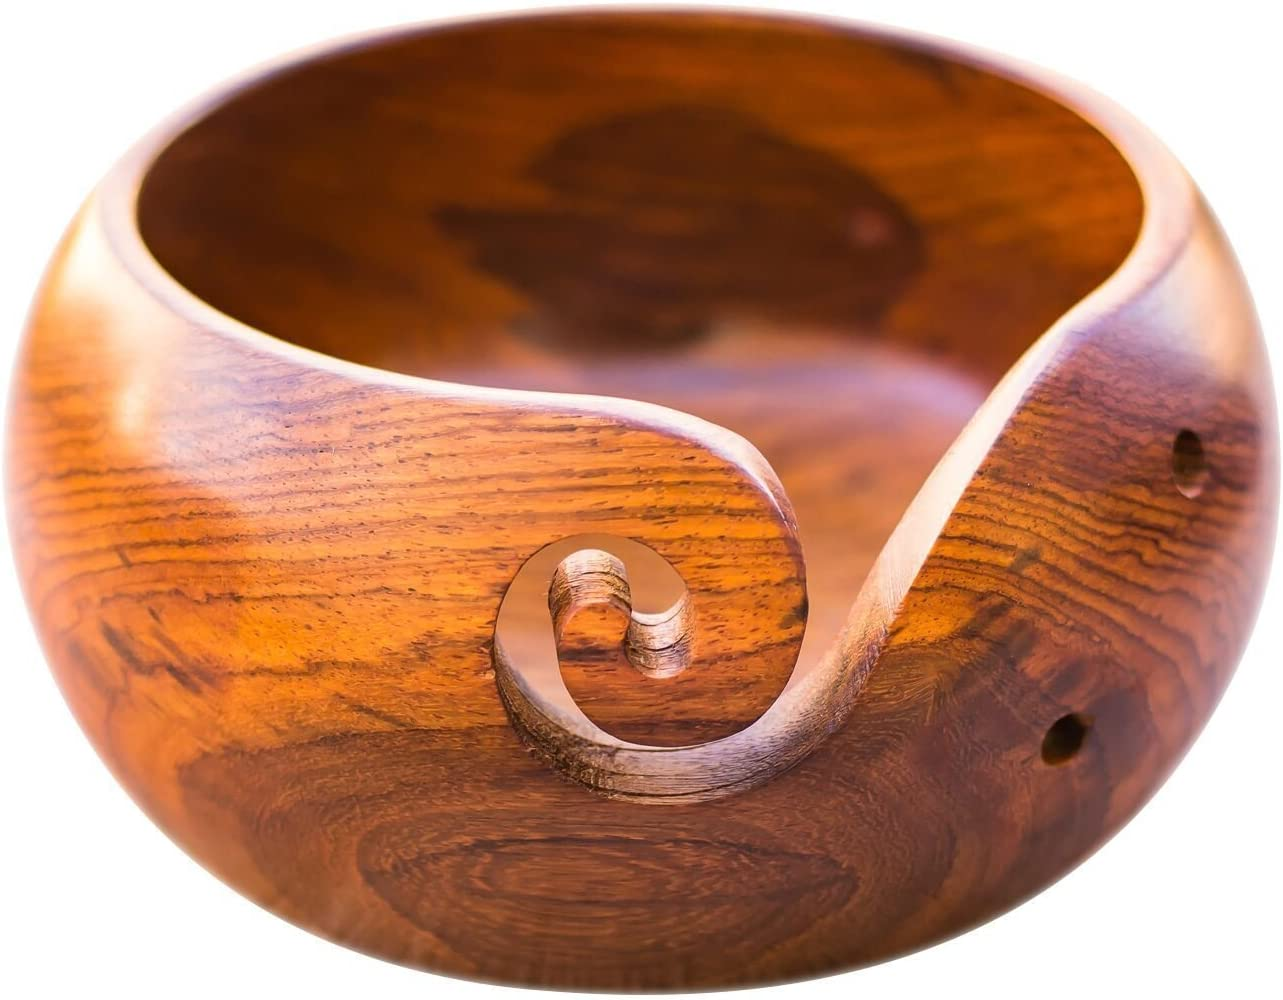 Wooden with Free Travel Pouch Naaz wood arts Yarn Bowl-6x3 Rosewood Heavy /& Sturdy to Prevent Slipping Perfect Yarn Holder for Knitting /& Crocheting Handmade from Sheesham wood